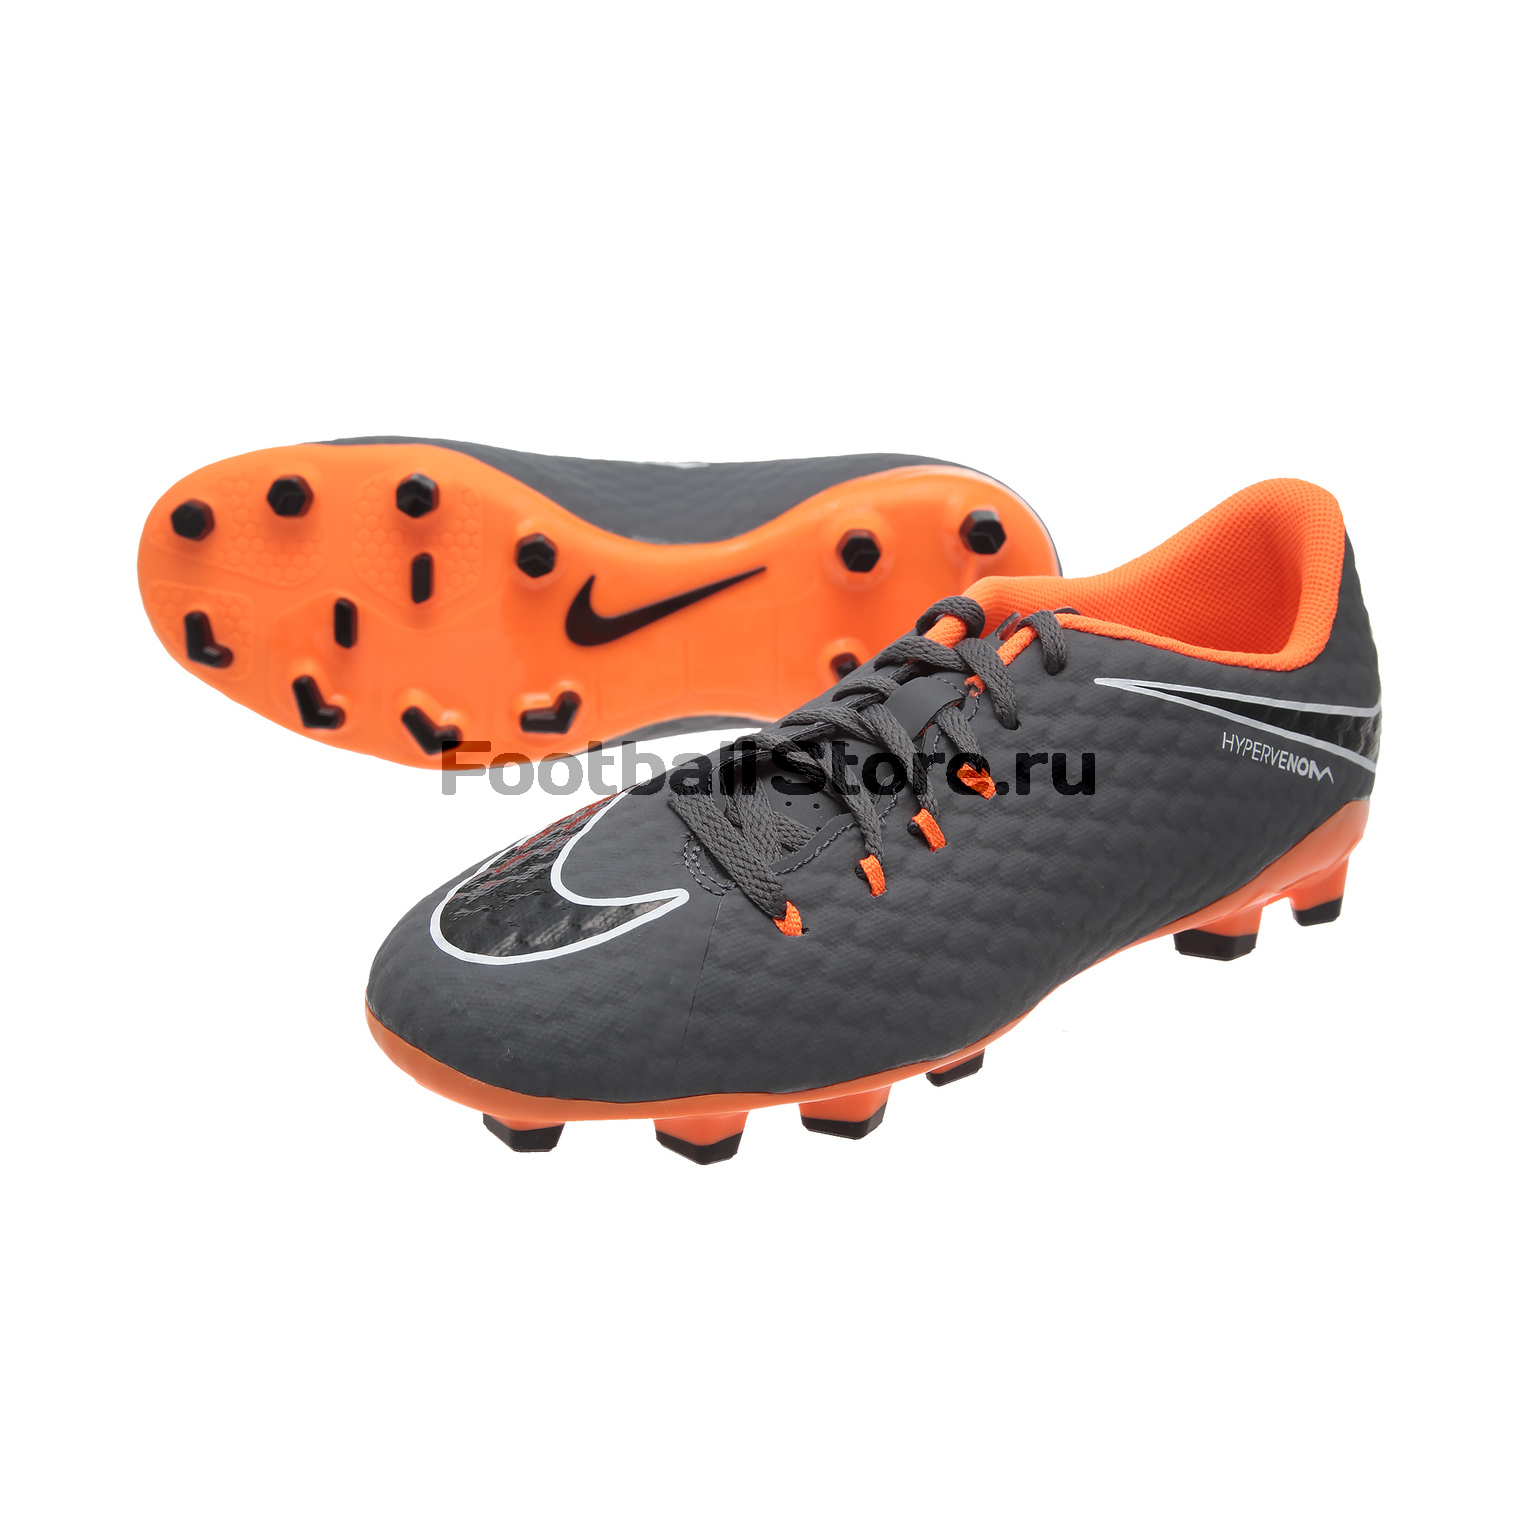 Бутсы Nike JR Phantom 3 Academy FG AH7288-081 бутсы nike superfly academy gs cr7 jr fg mg aj3111 390